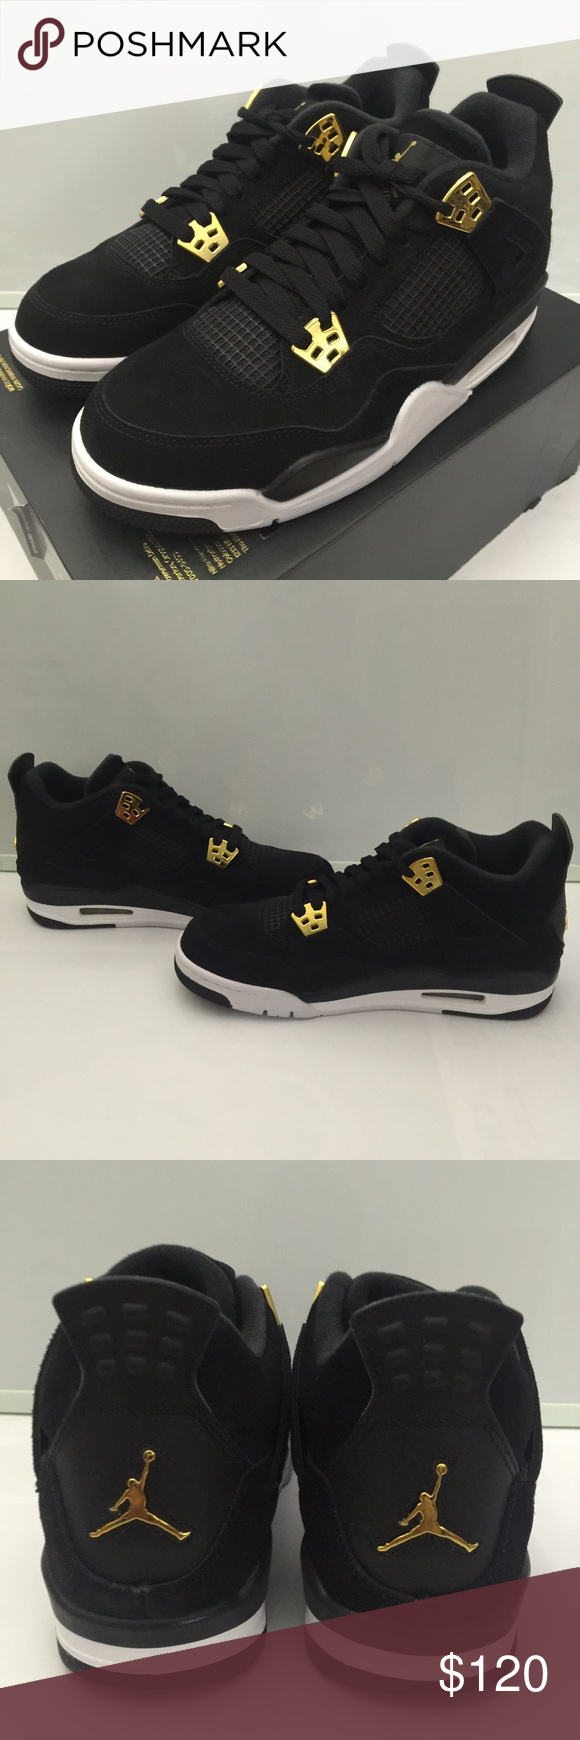 3fbe2f7f862406 Jordan 4 Retro Royalty Black Metallic Gold BG 6.5Y Brand new in original  box(